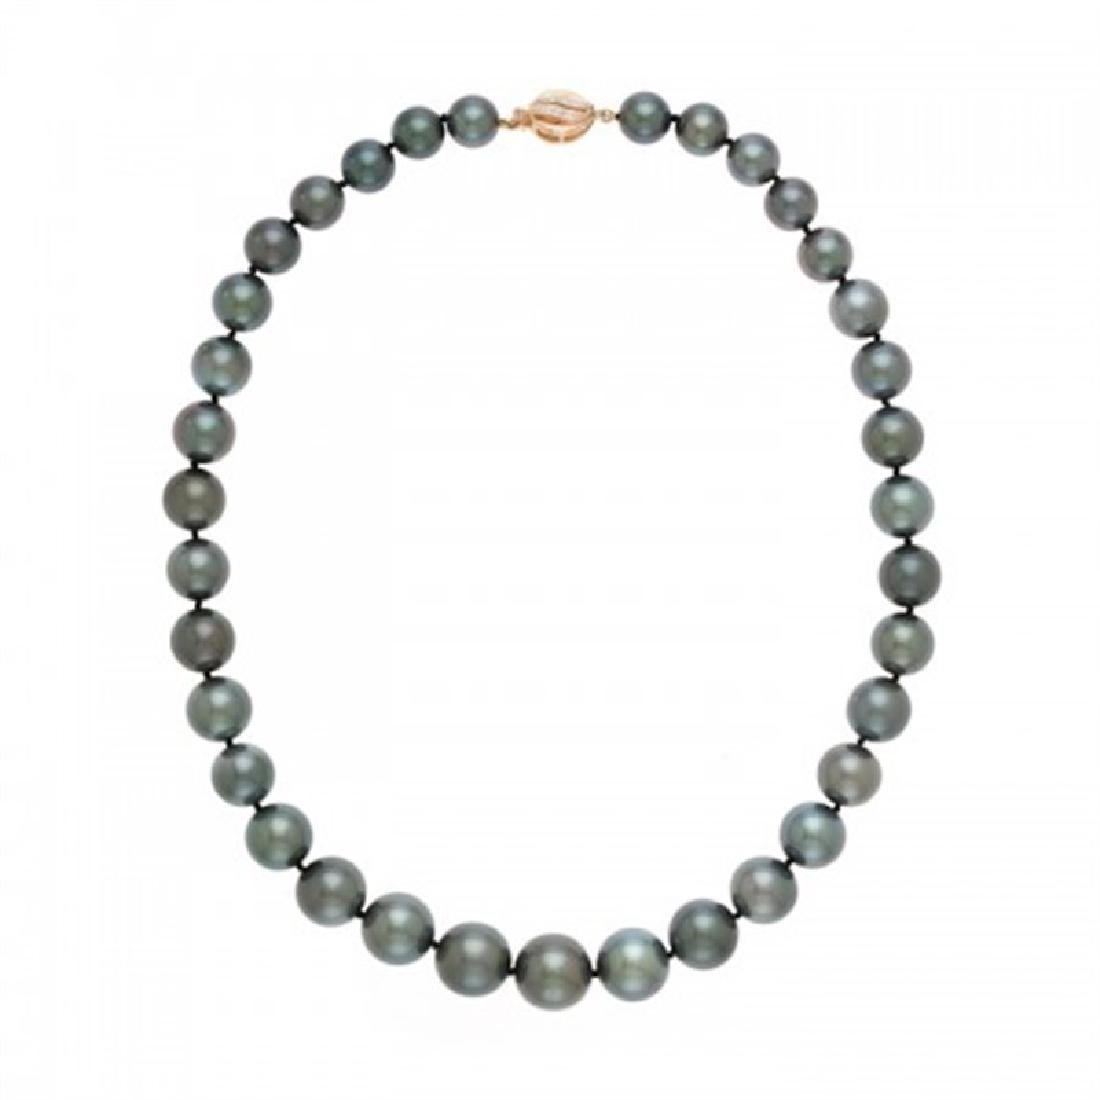 10.0-15.0mm Tahitian Black Pearl Necklace